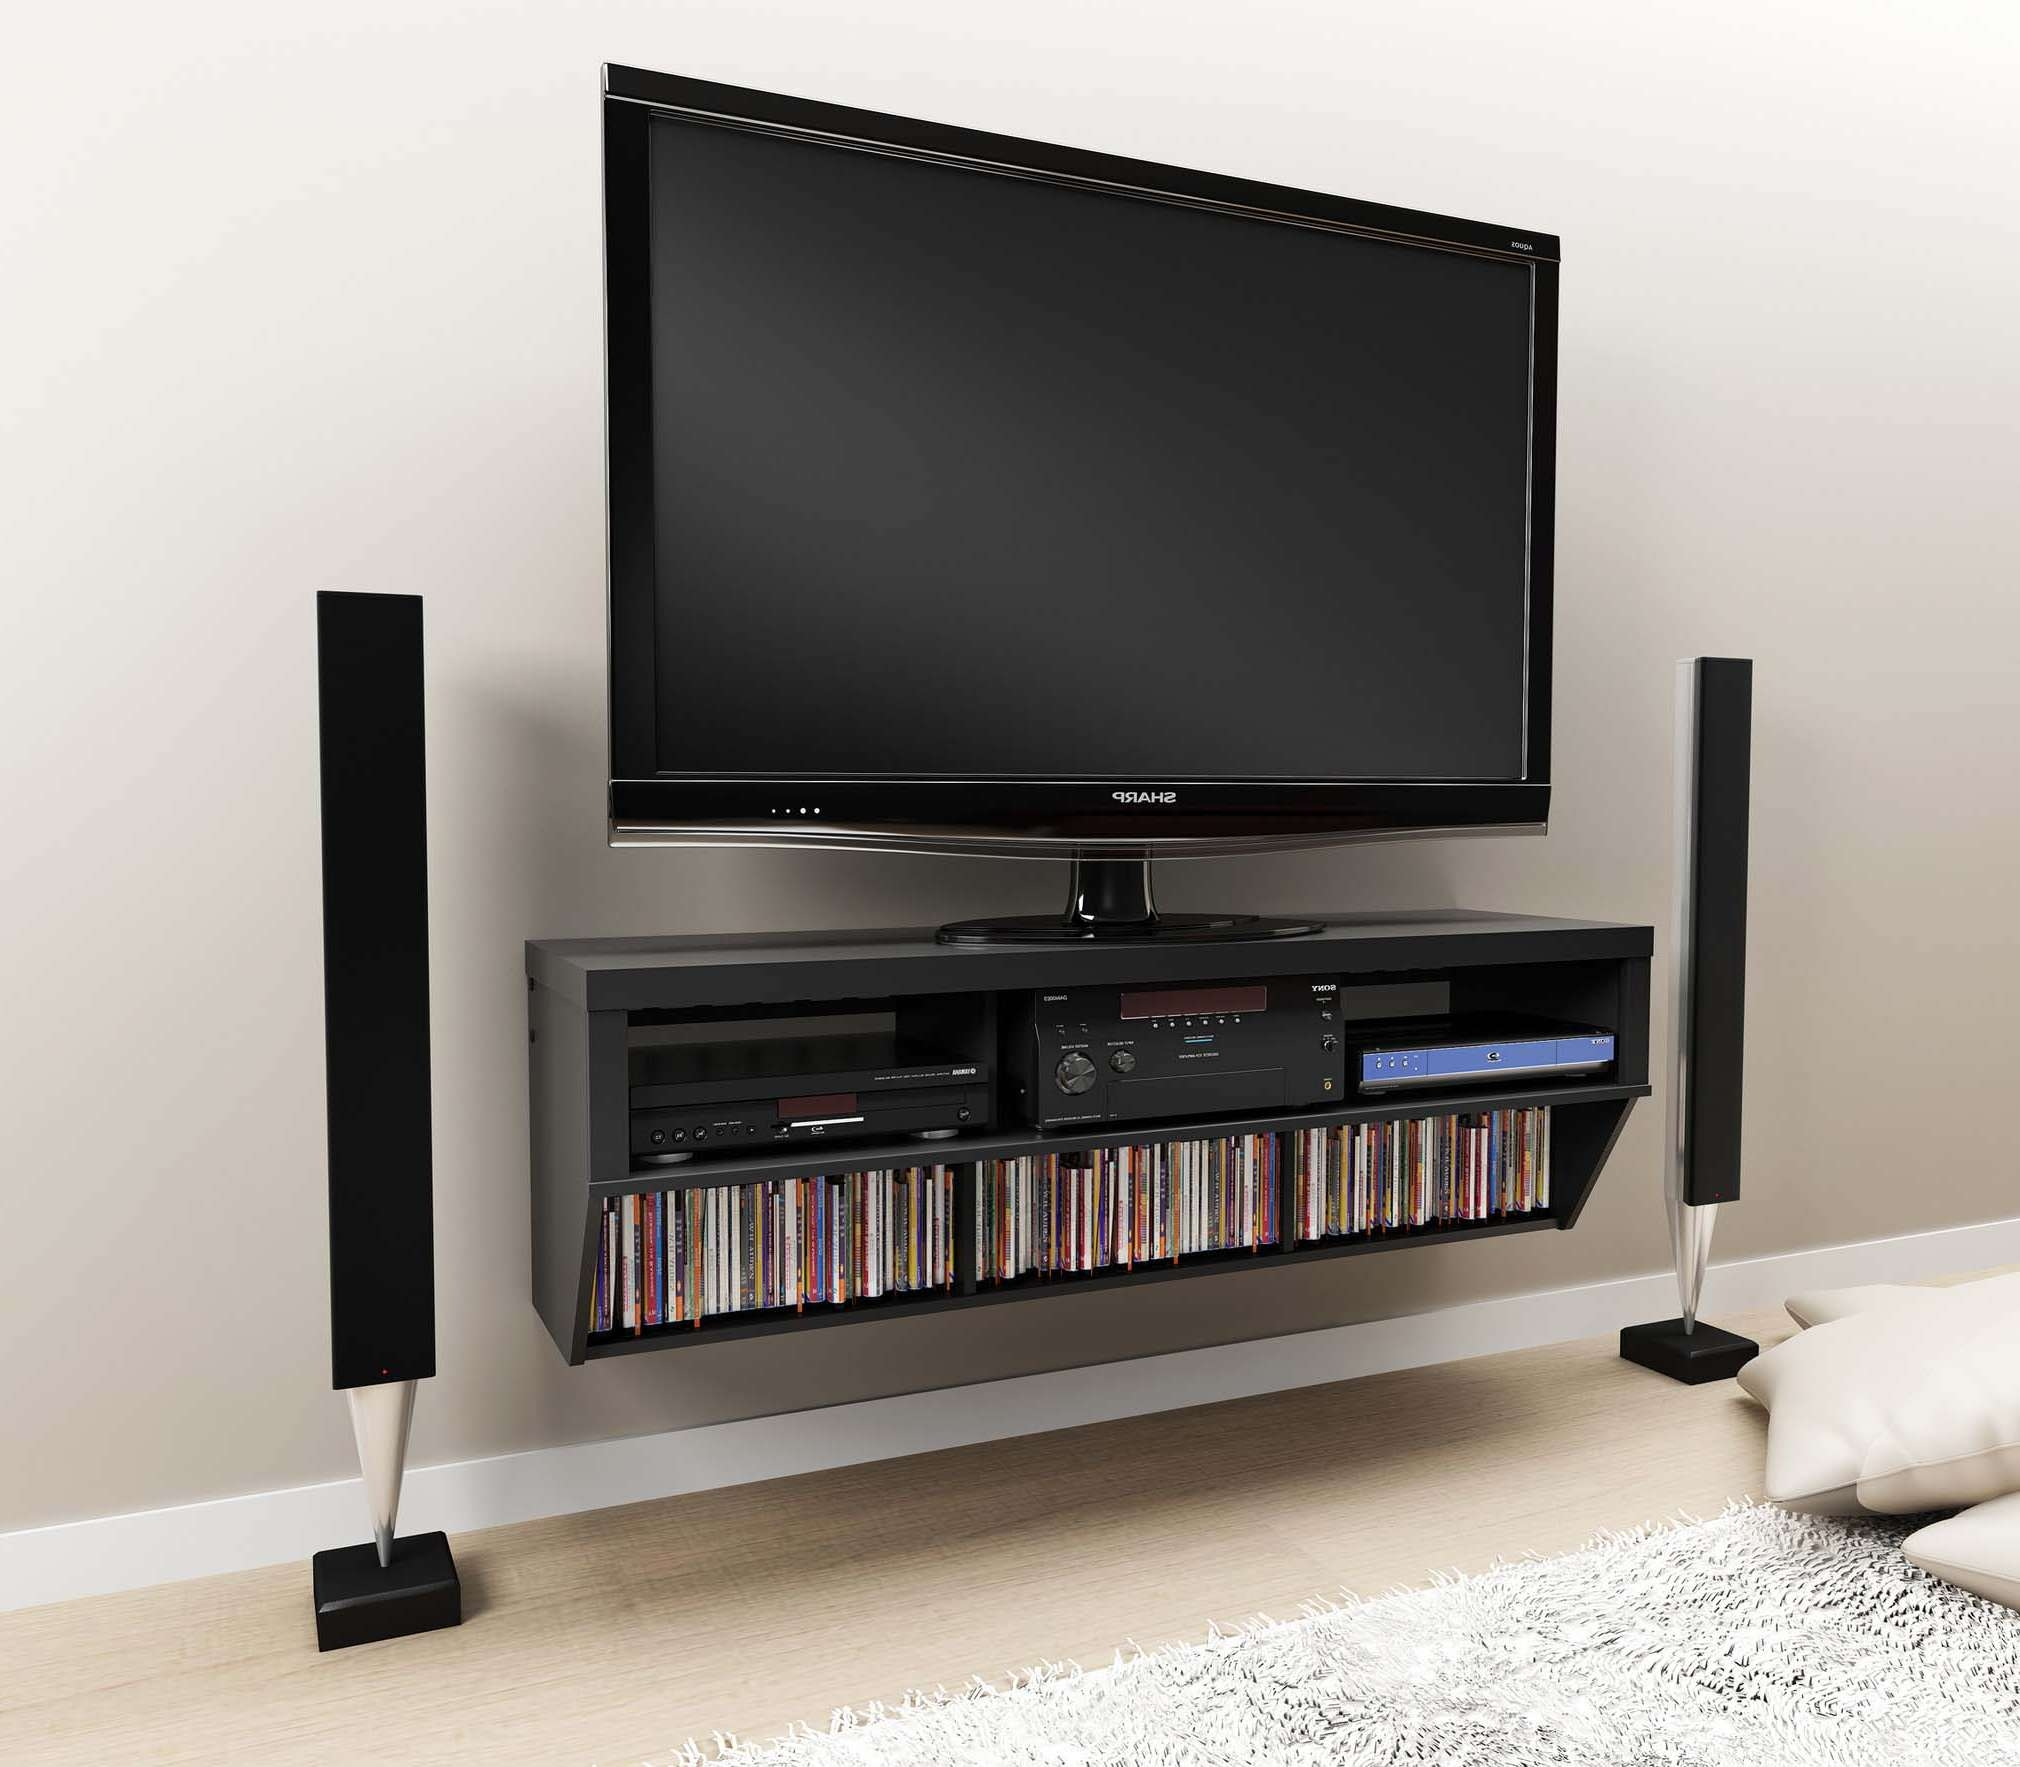 Captivating Wall Mounted Tv Cabinet With Sliding Doors Images In Wall Mounted Tv Cabinets With Sliding Doors (View 18 of 20)